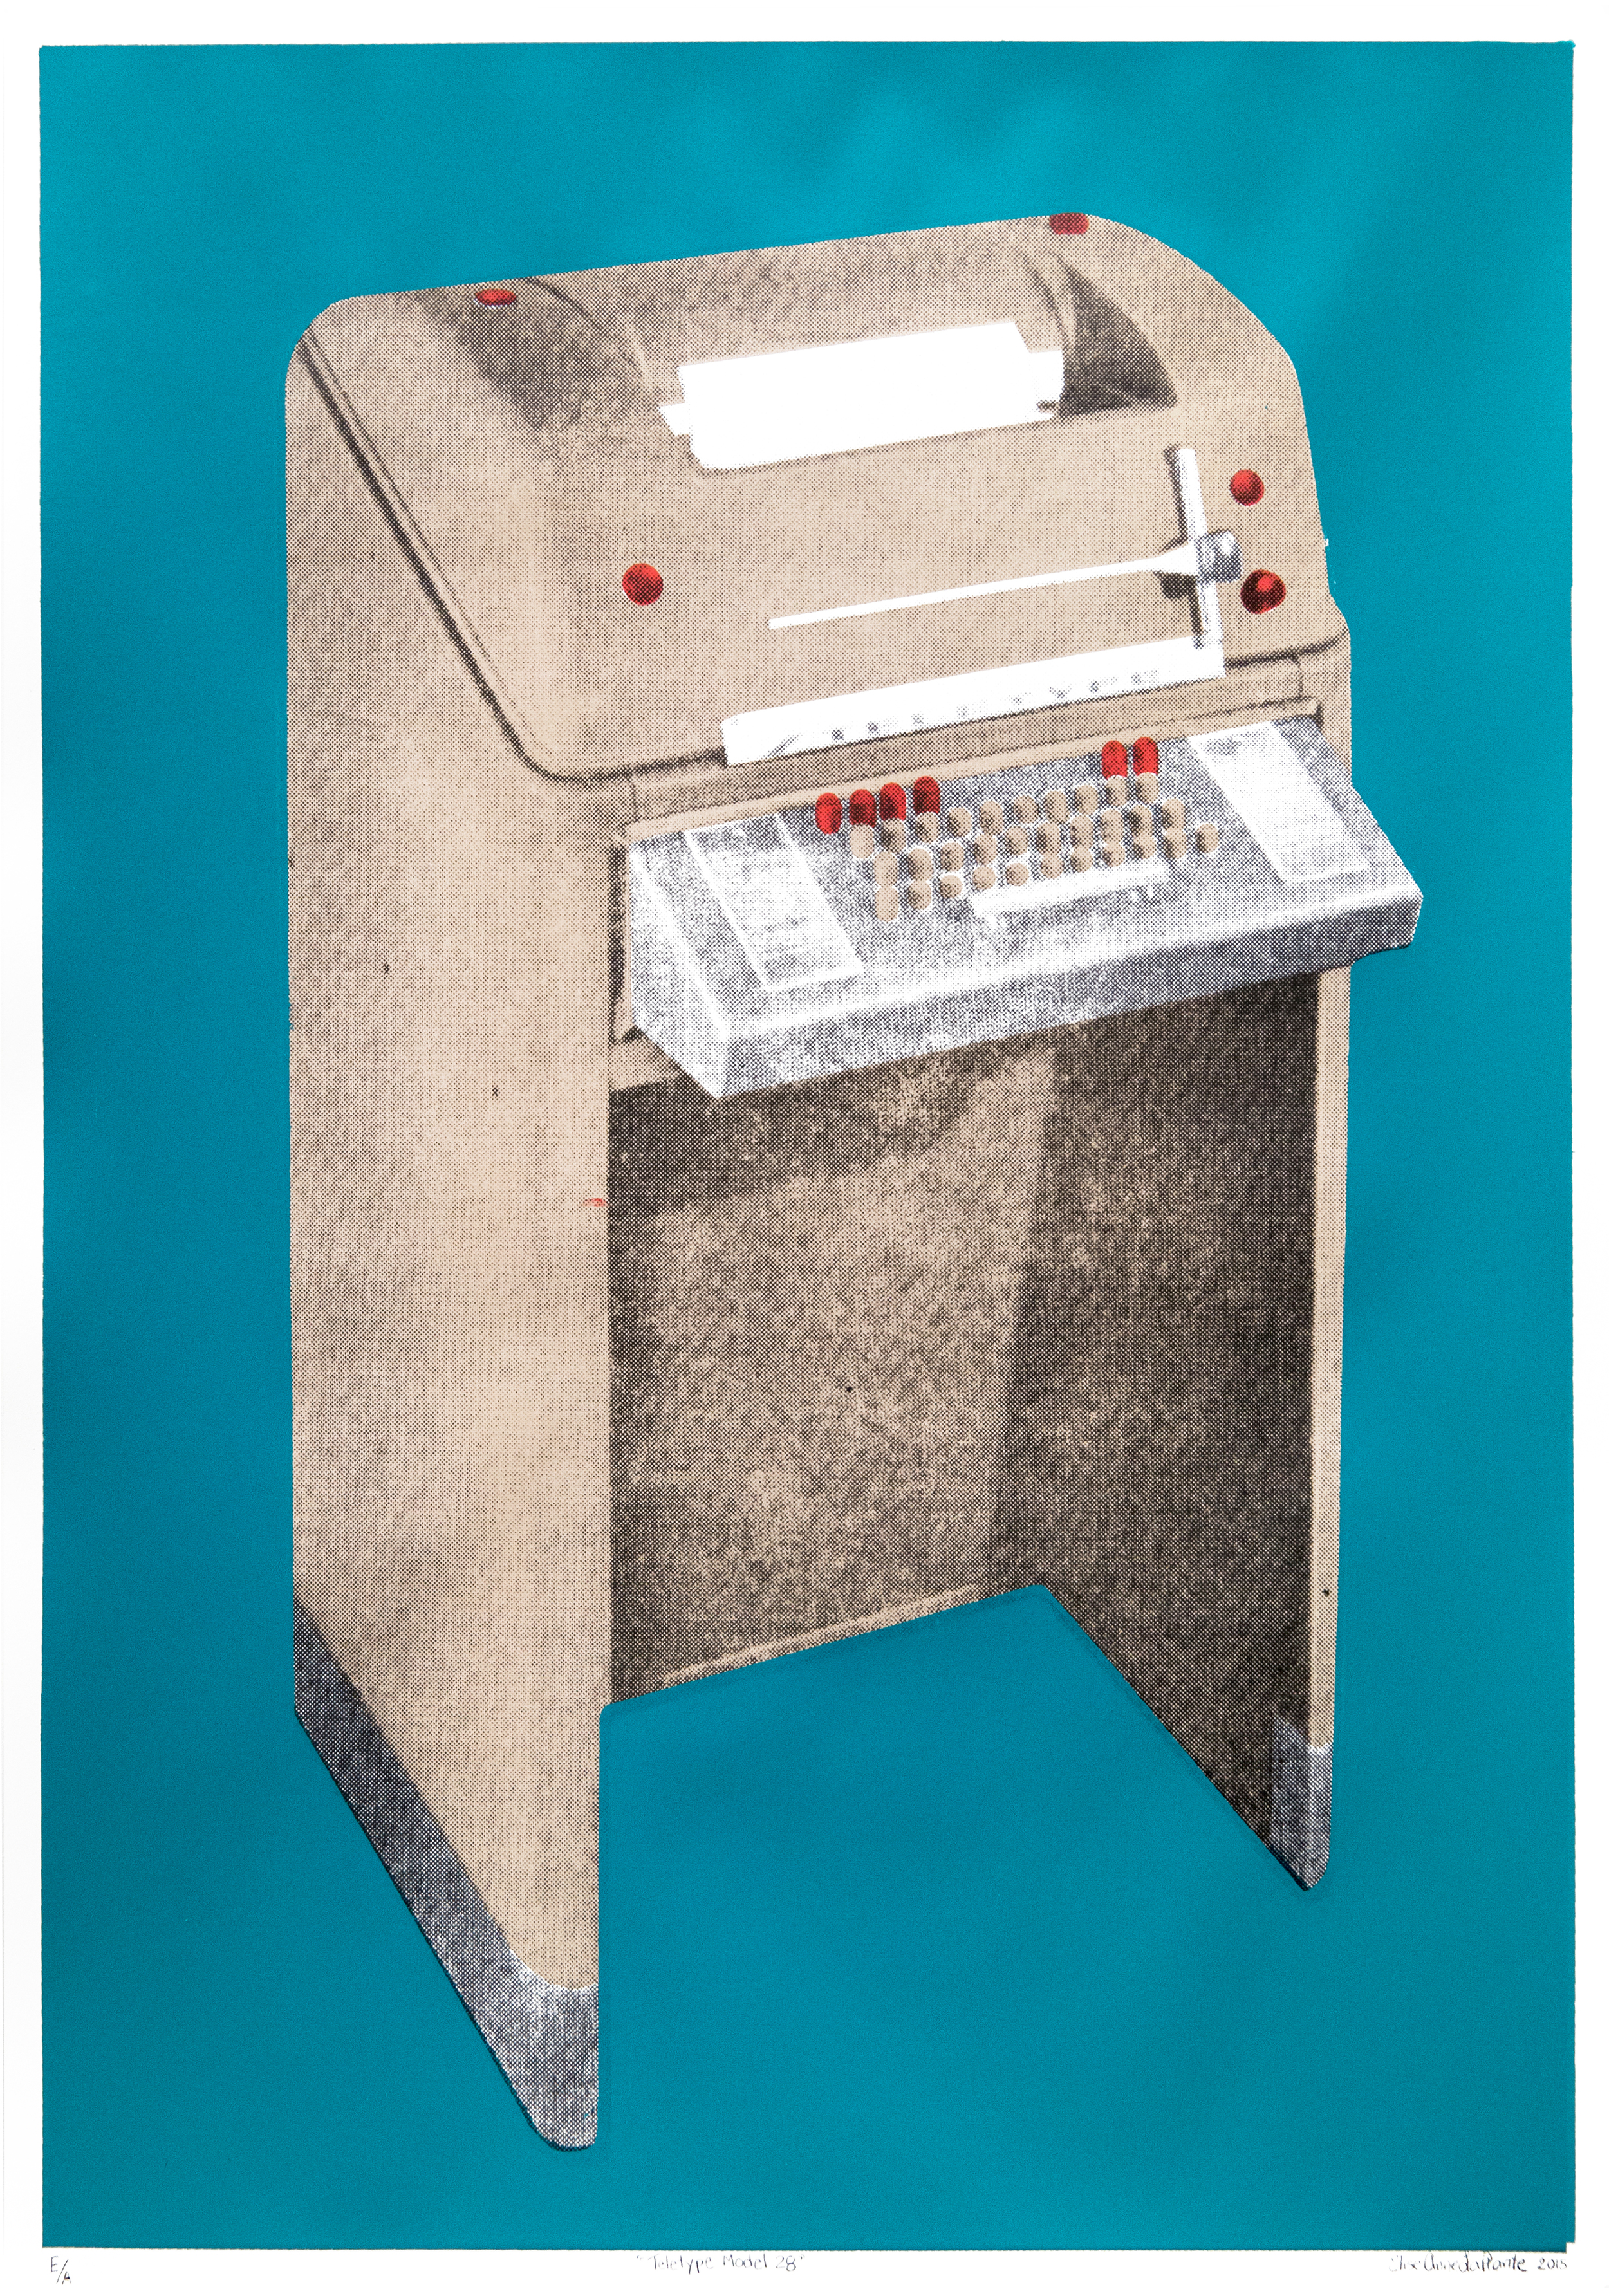 """ Teletype Model 28"", sérigraphie, 2015.  /   © Elise Anne LaPlante 2015  /  Photo : Annie France Noël"